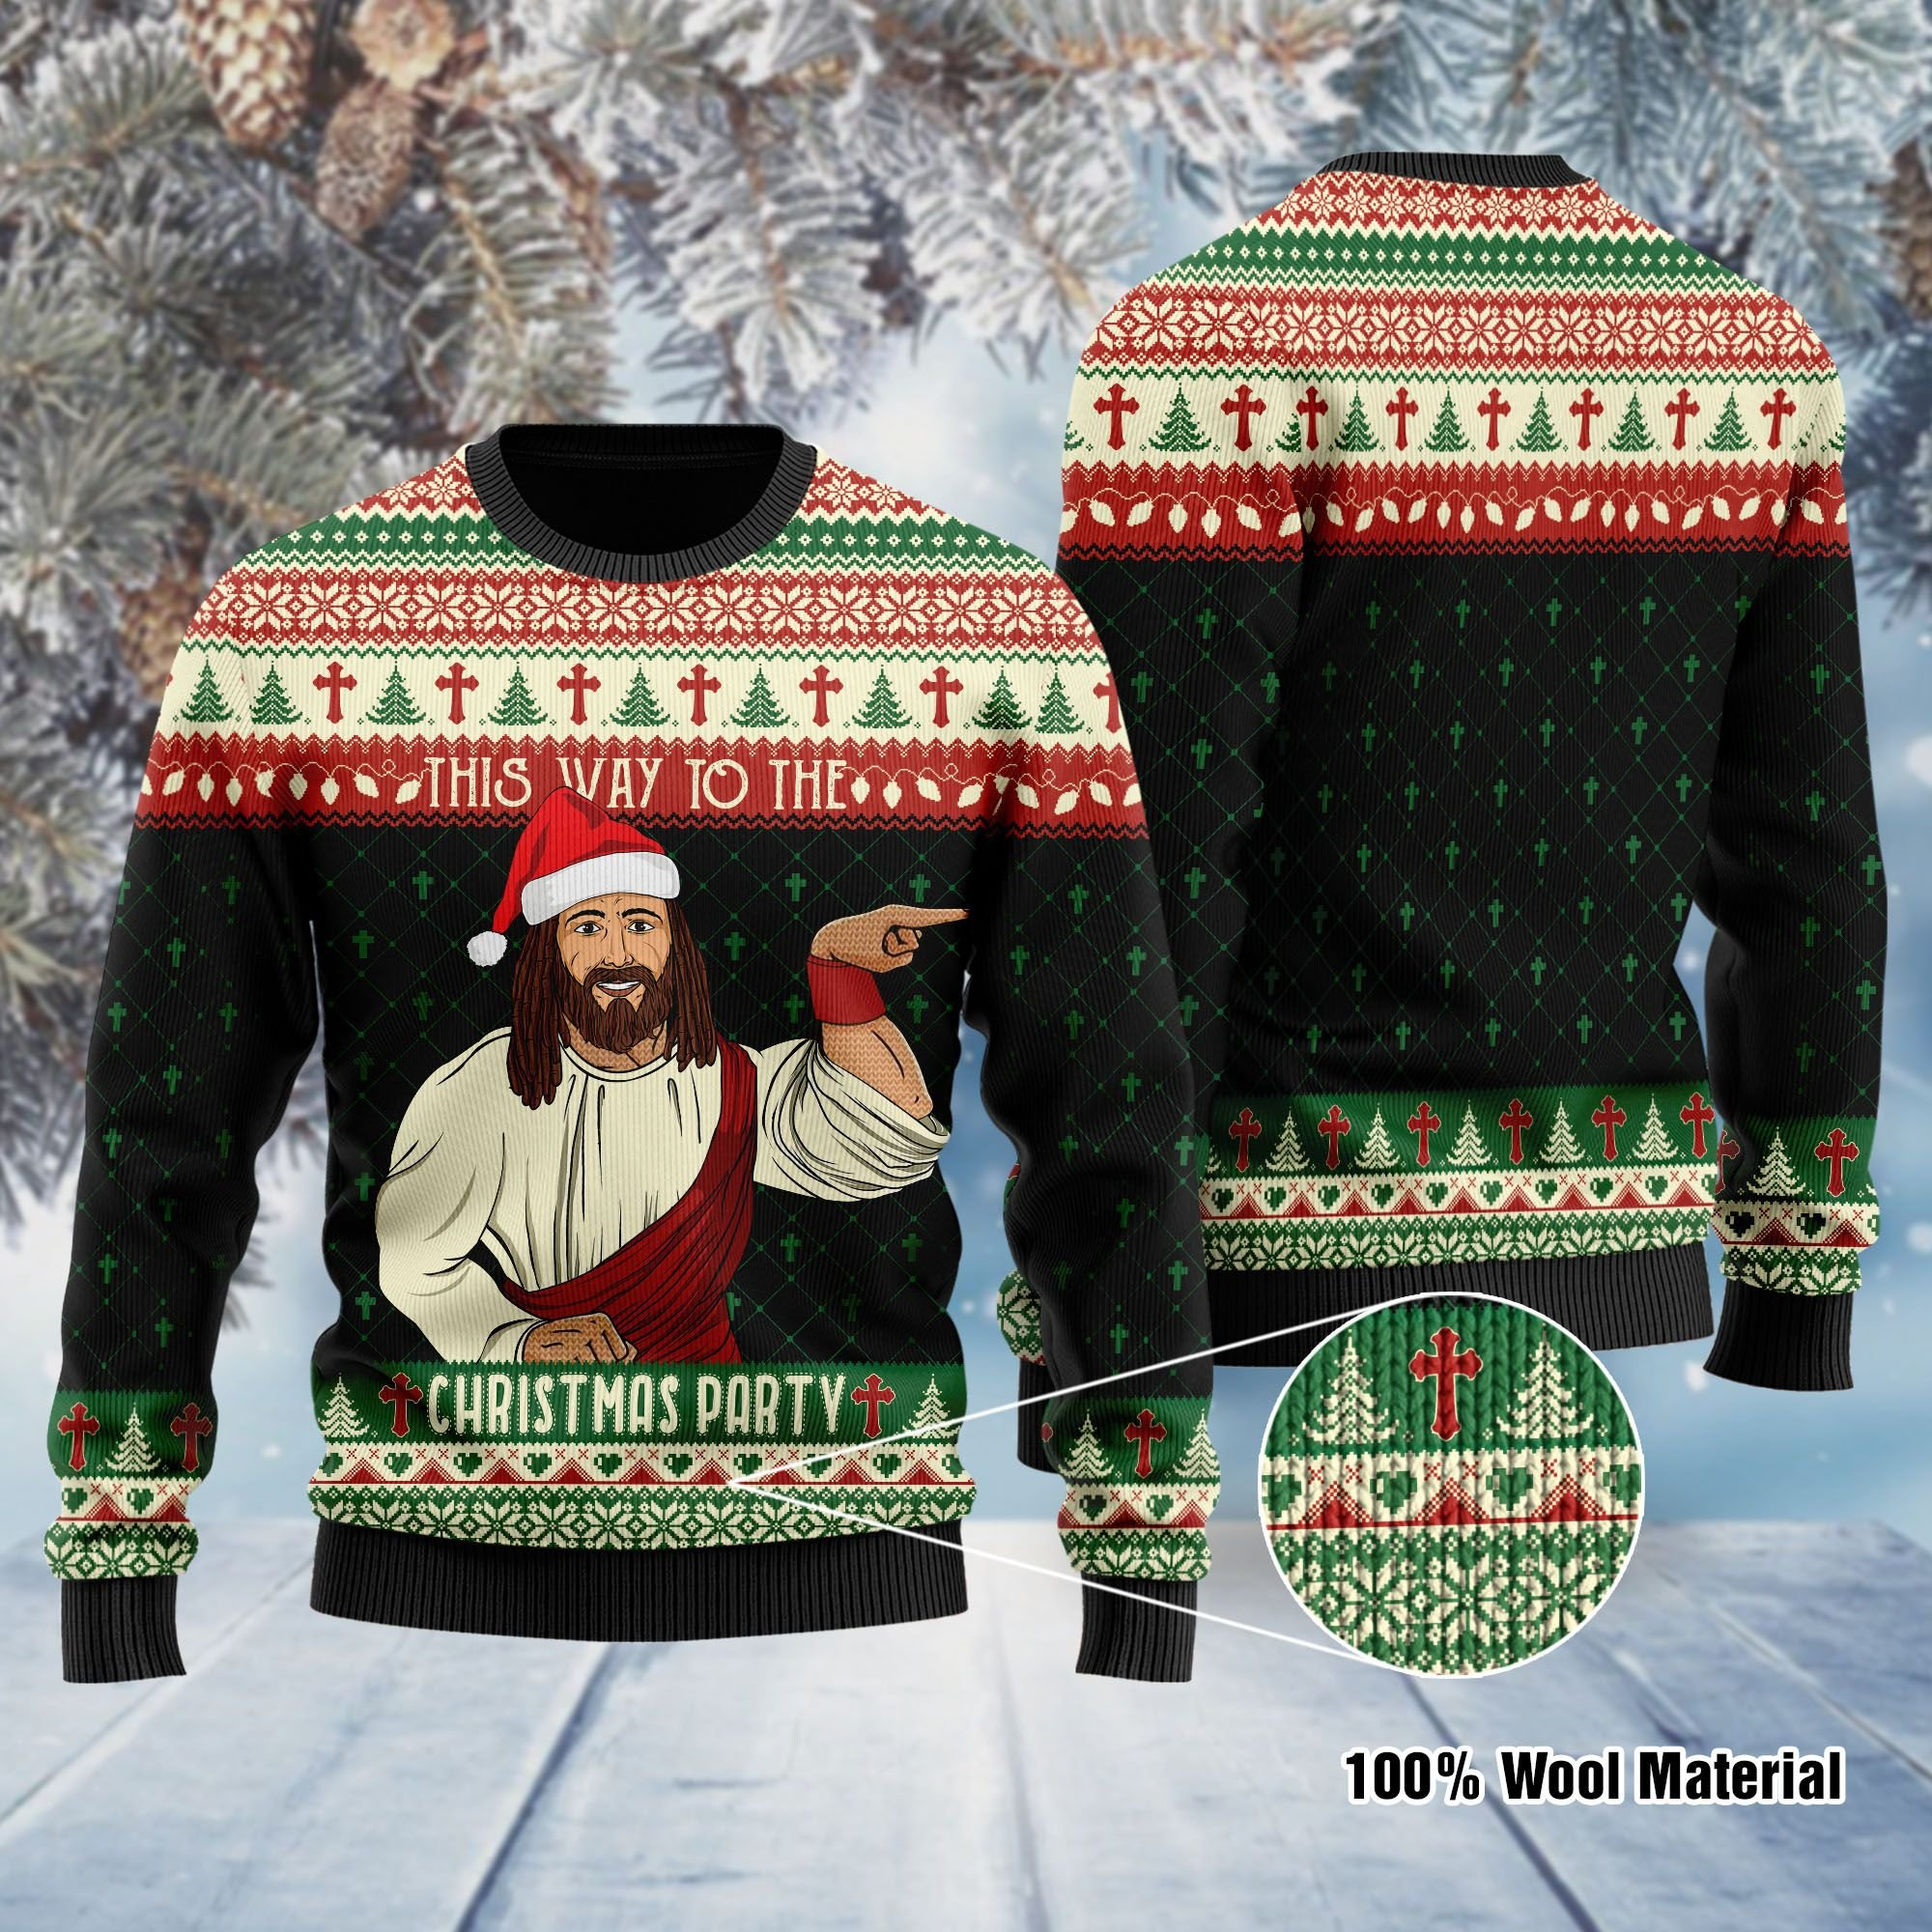 This Way To The Christmas Party Jesus Ugly Sweater